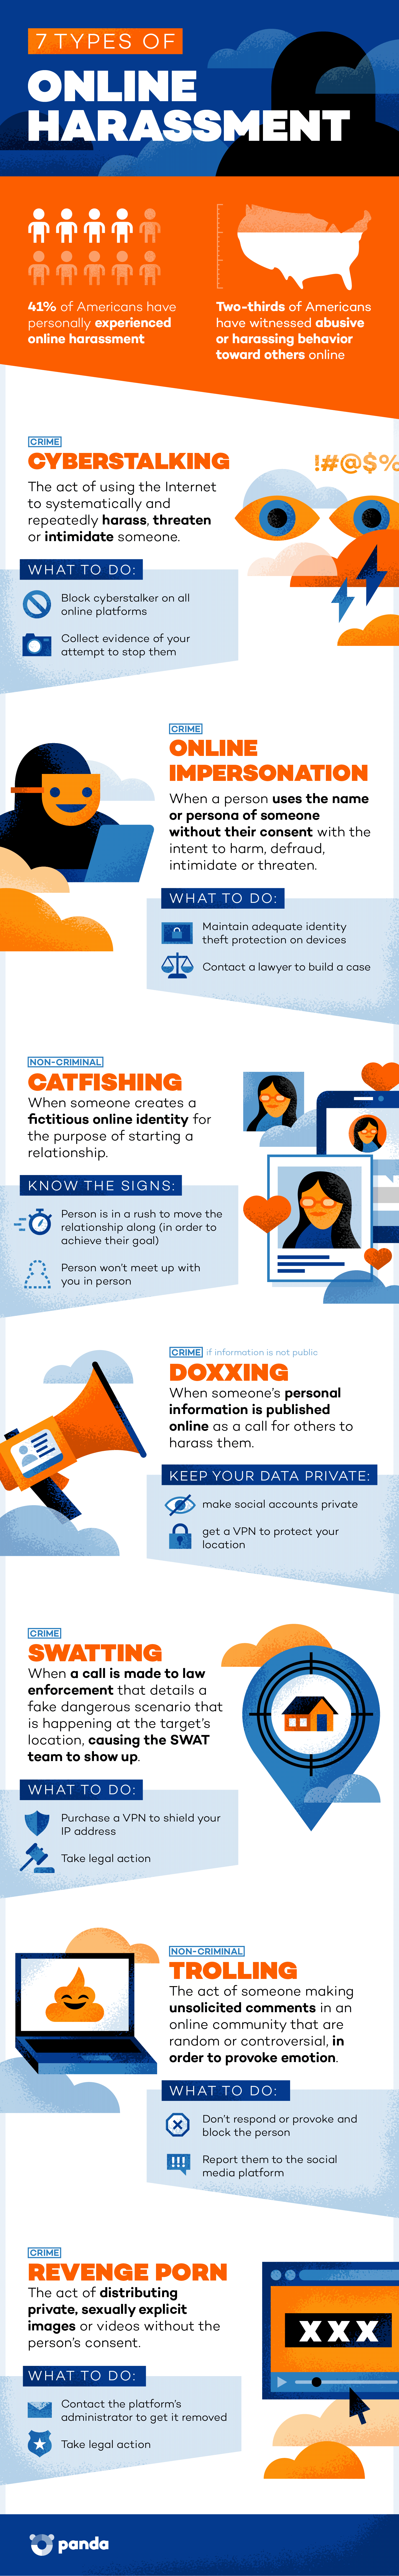 7 Types Of Online Harassment (And How To Handle Them)